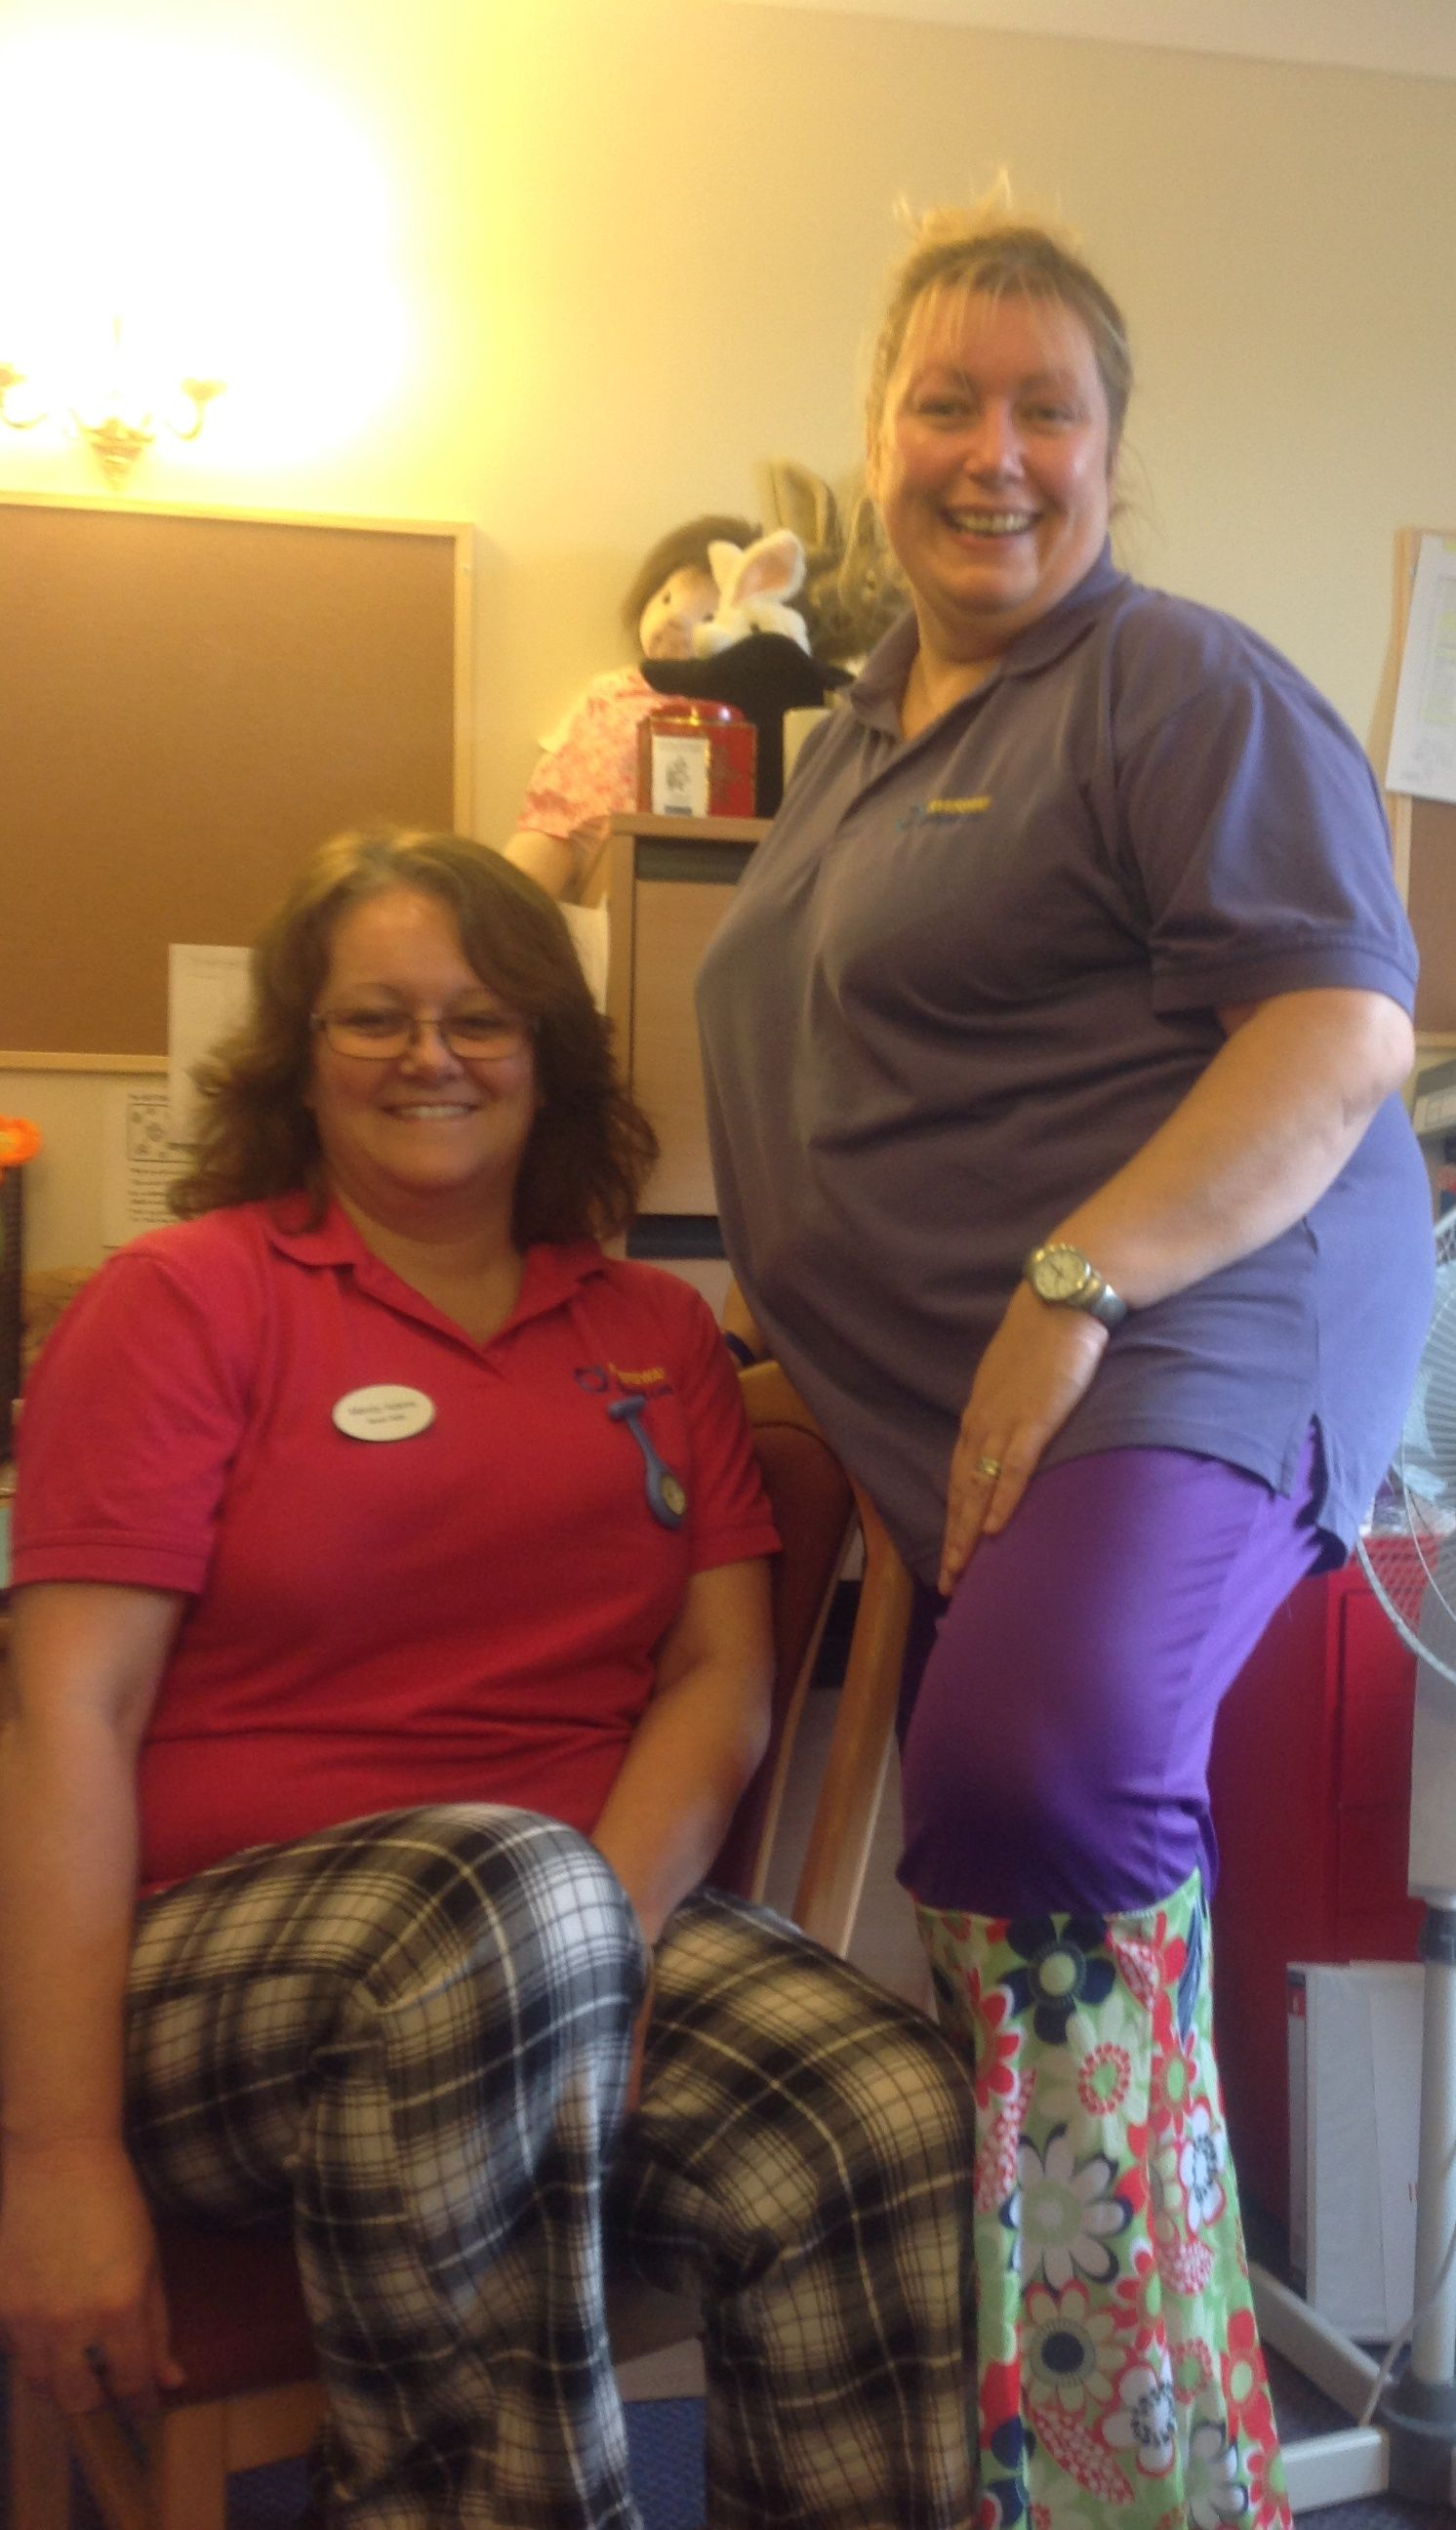 Sarah and Mandy proudly show off their WRONG trousers for Children In Need! We're Loving the Rupert the bear & 70's flares look